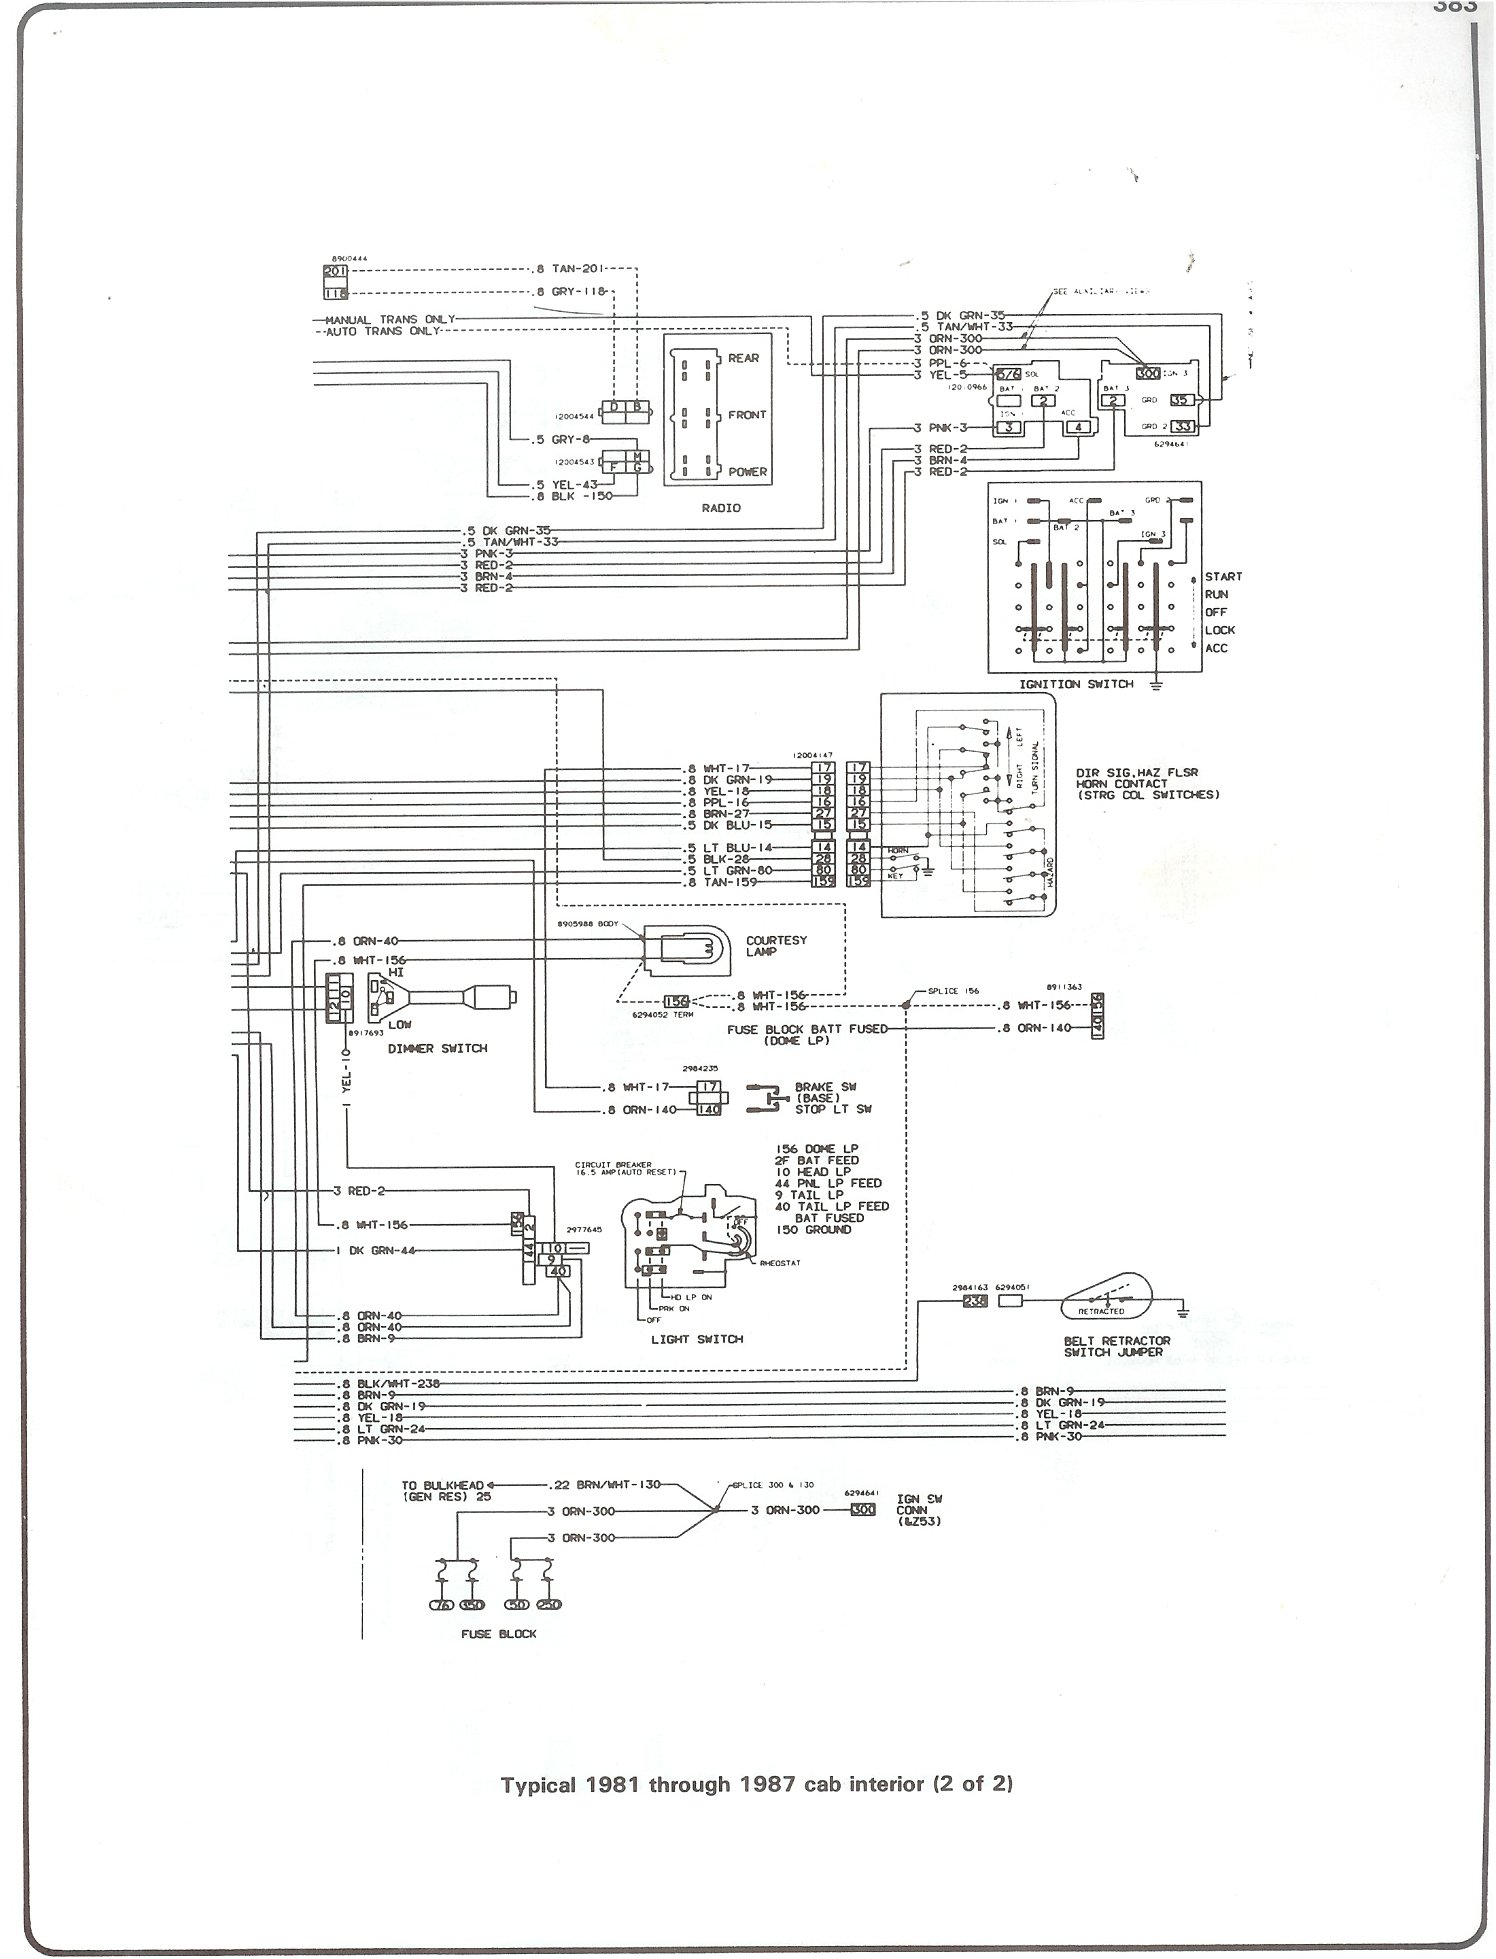 81 87_cab_inter_pg2 electrical diagrams chevy only page 2 truck forum  at gsmportal.co